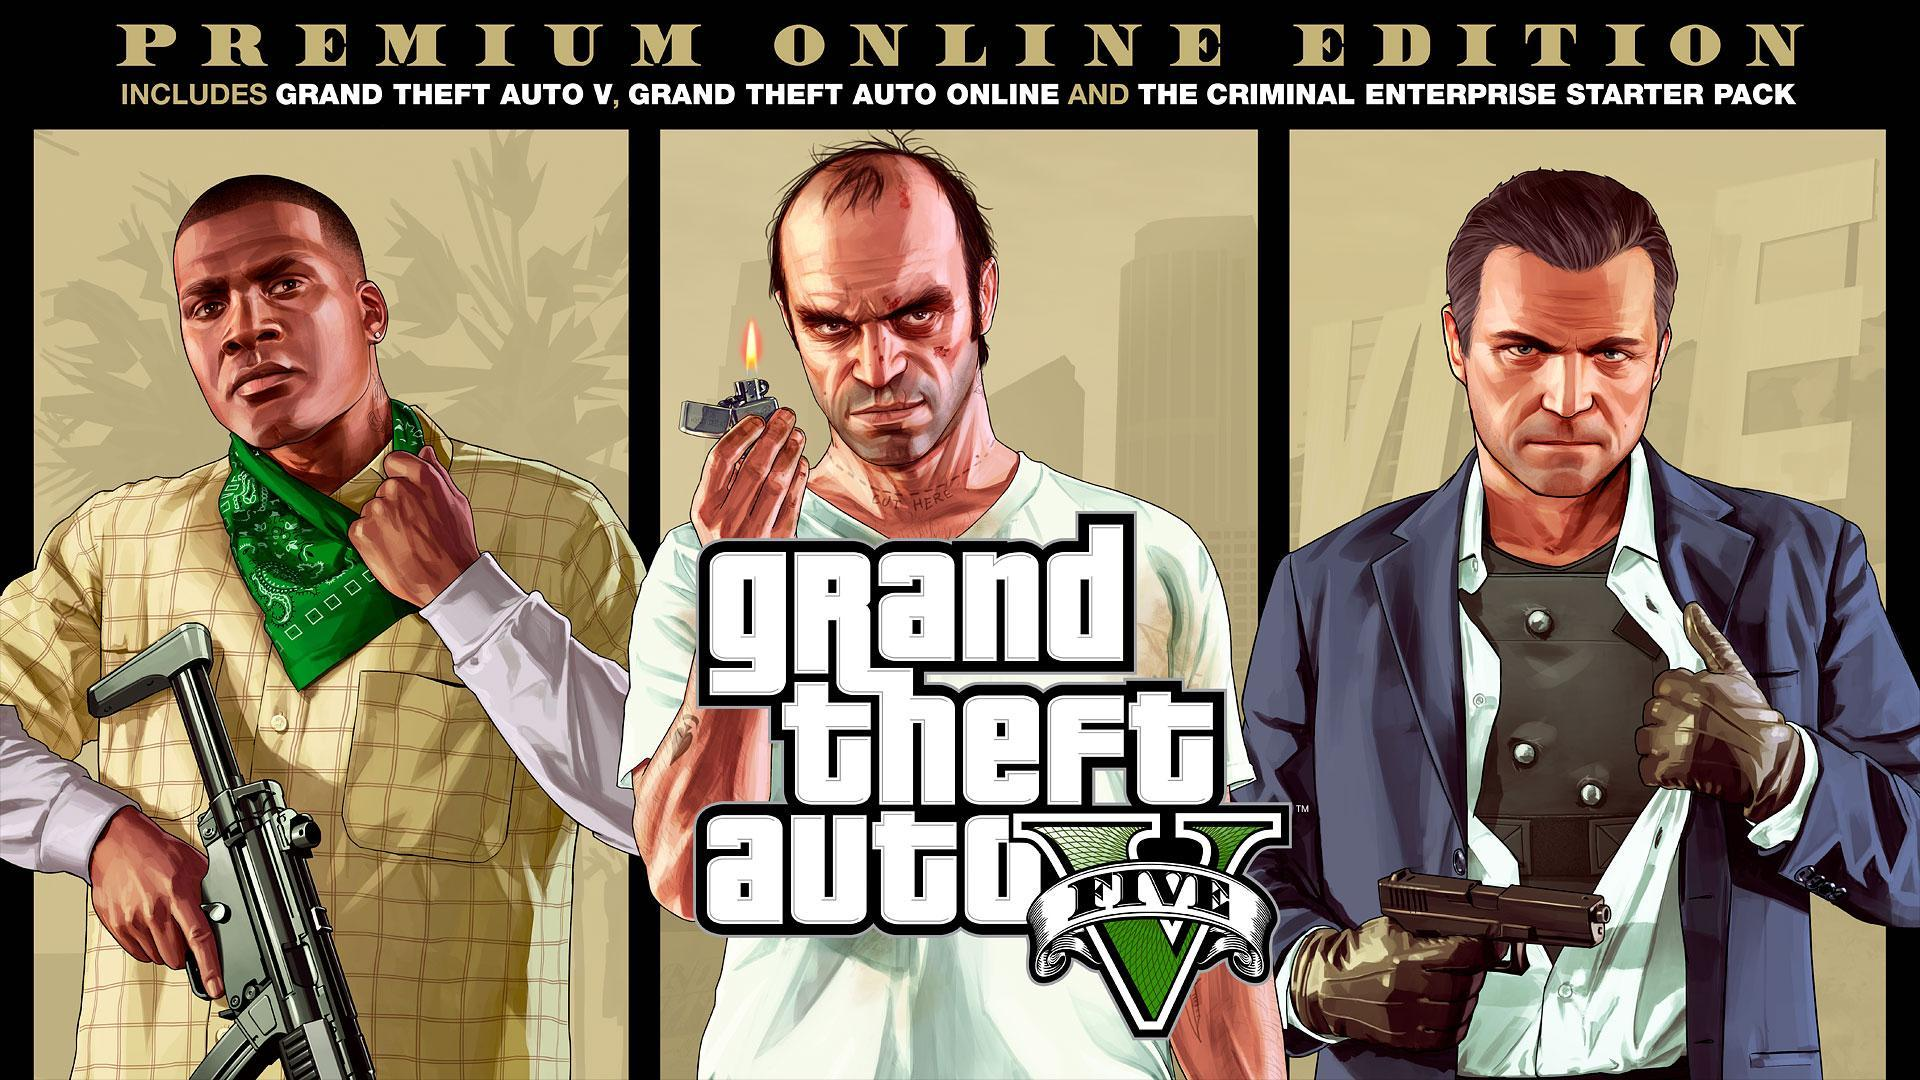 Grand Theft Auto V Premium Online Edition - Includes Criminal Enterprise Starter Pack